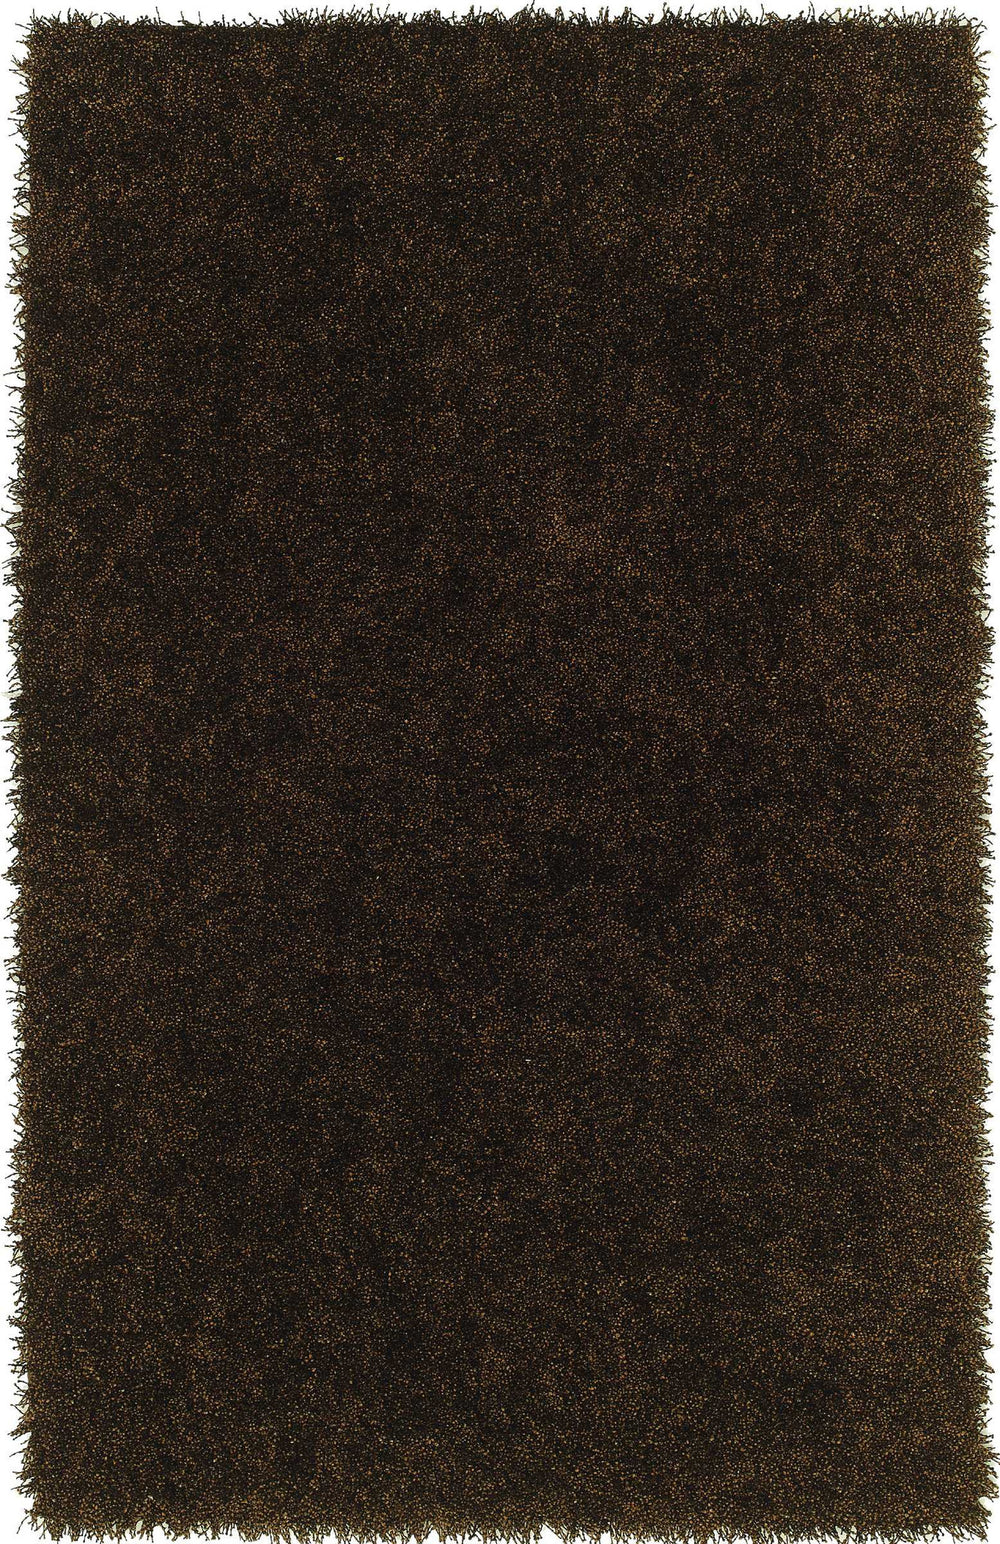 Dalyn Belize BZ100 Area Rug